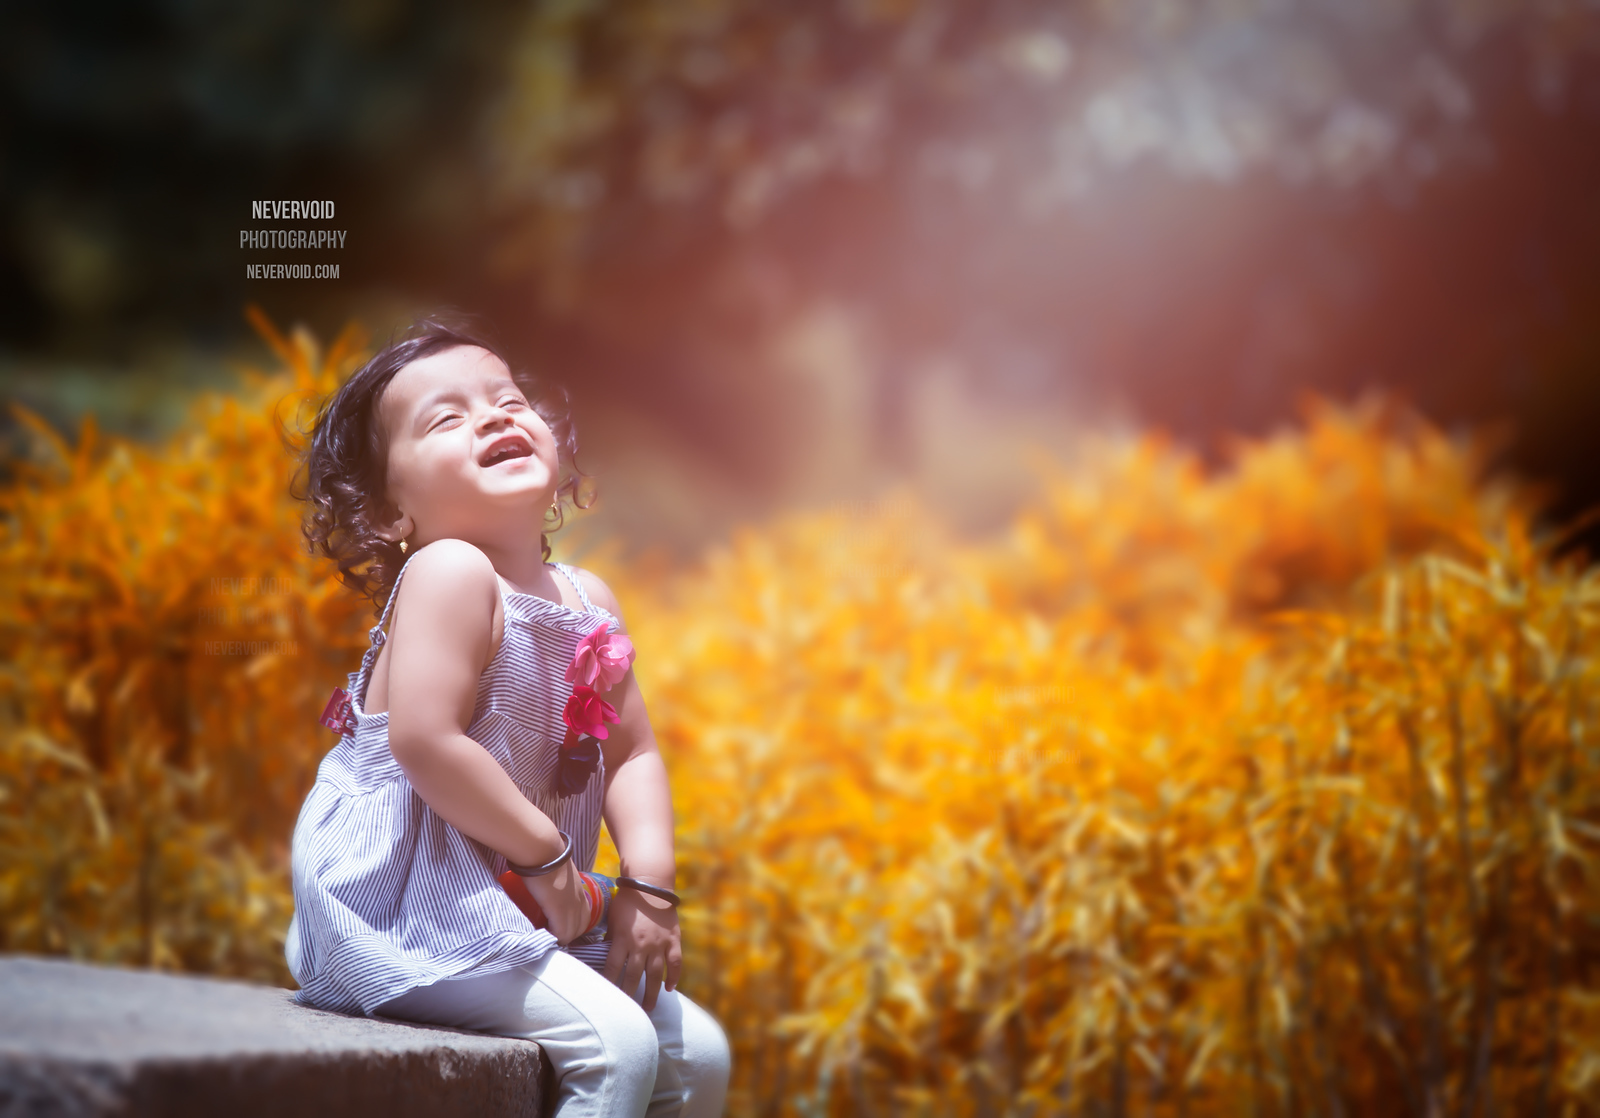 To love is to recognize yourself in another - Kids photography